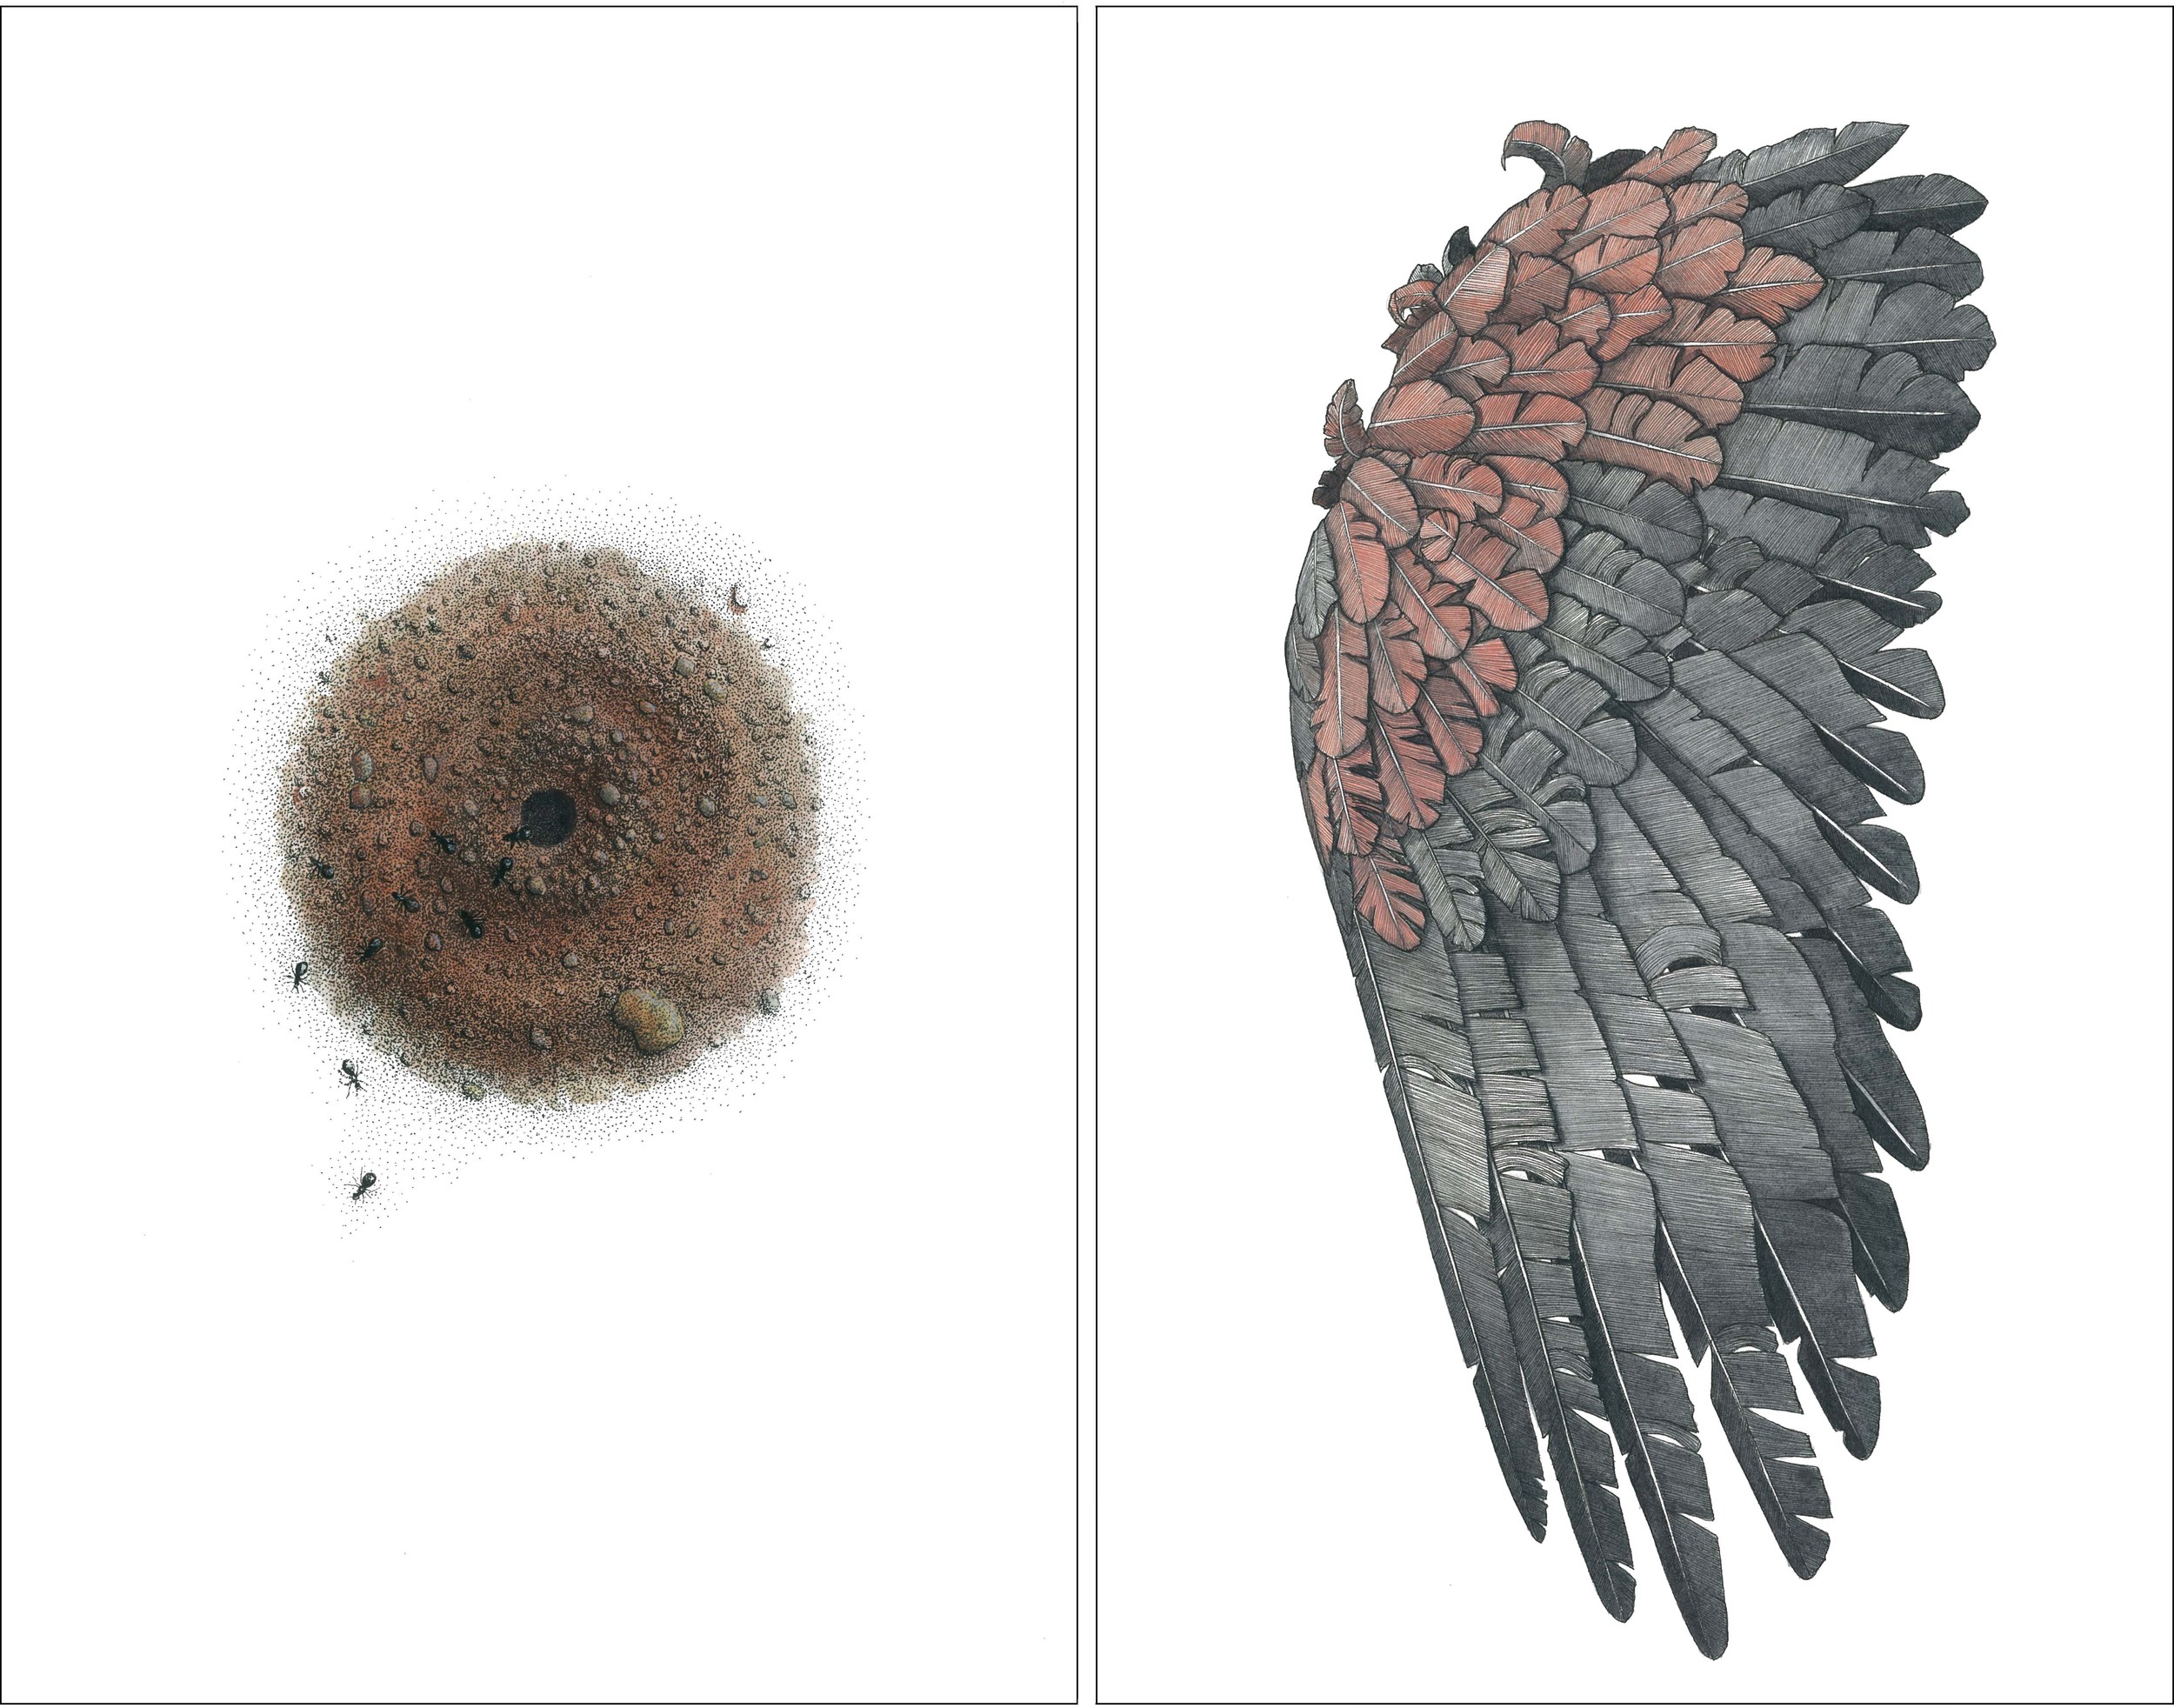 'Ant Nest' + 'Cockatoo Wing'